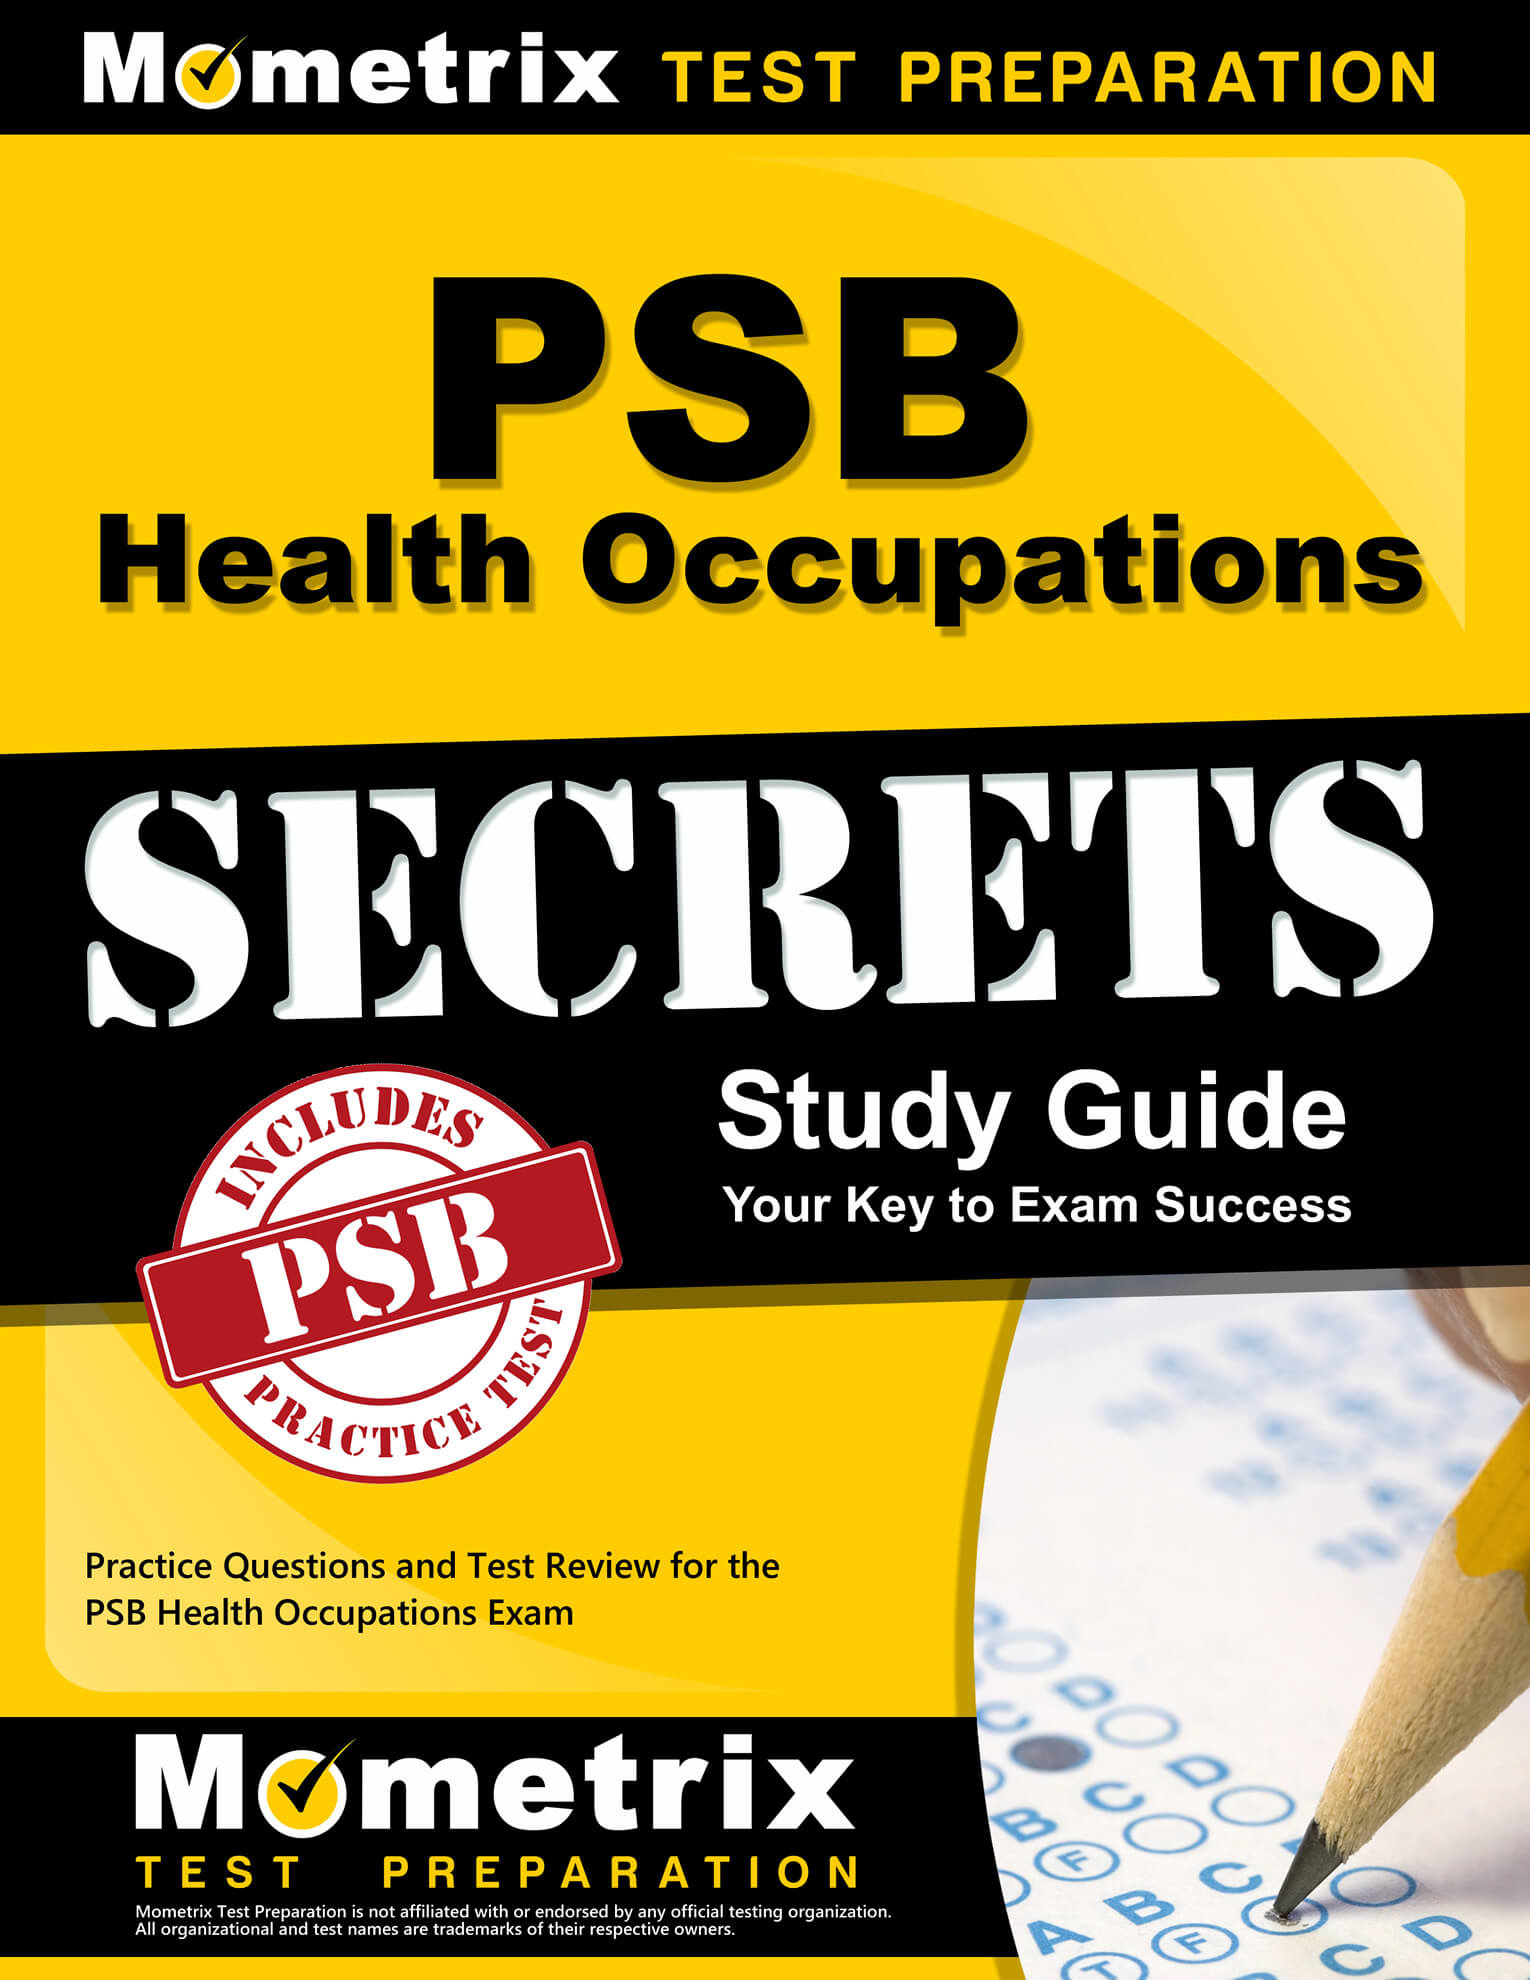 PSB Study Guide